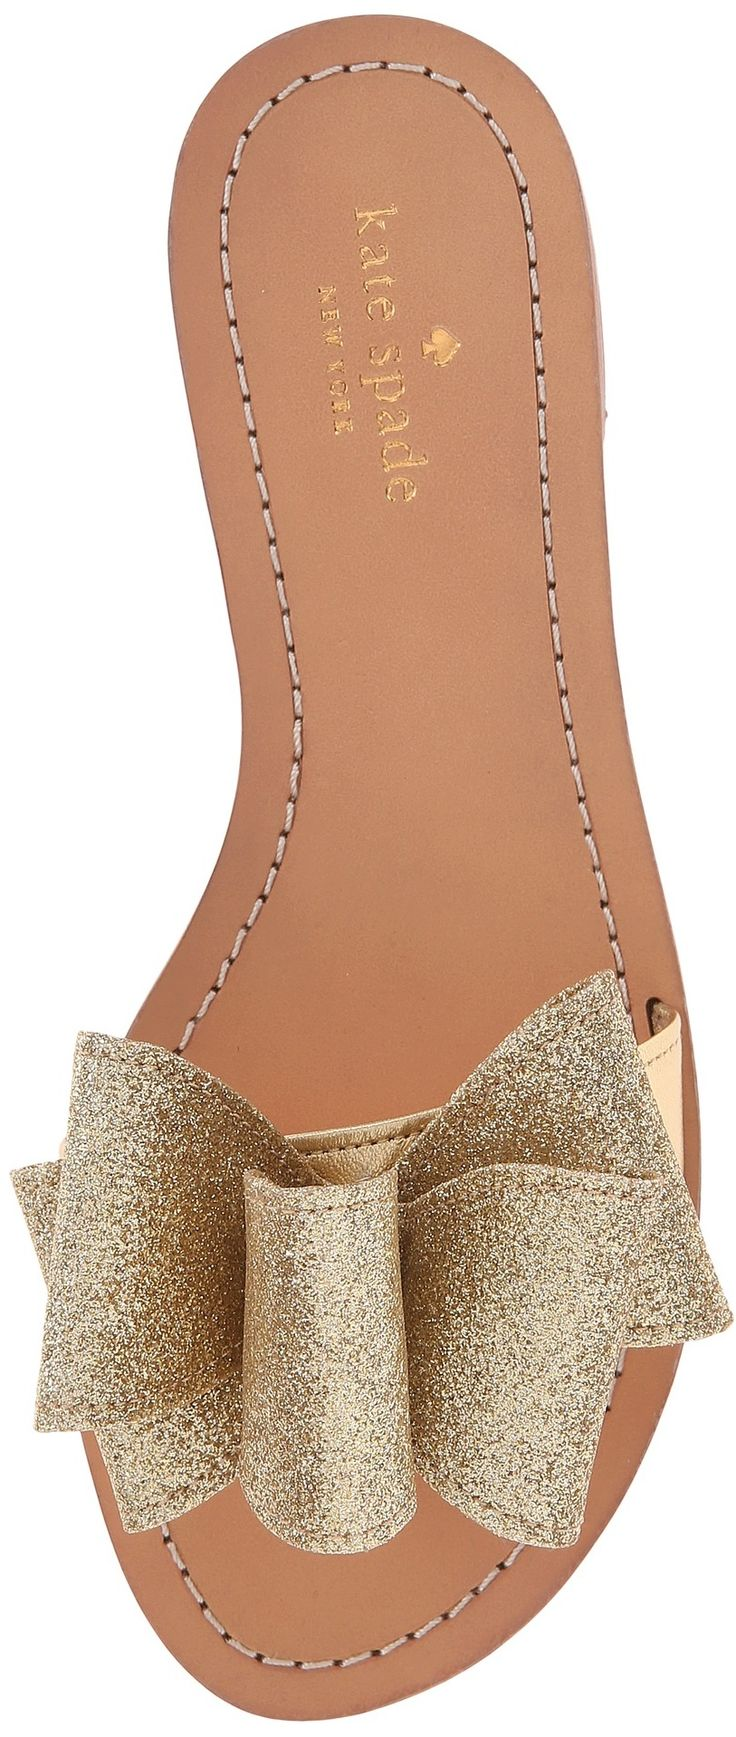 Kate Spade Glitter Bow Sandals